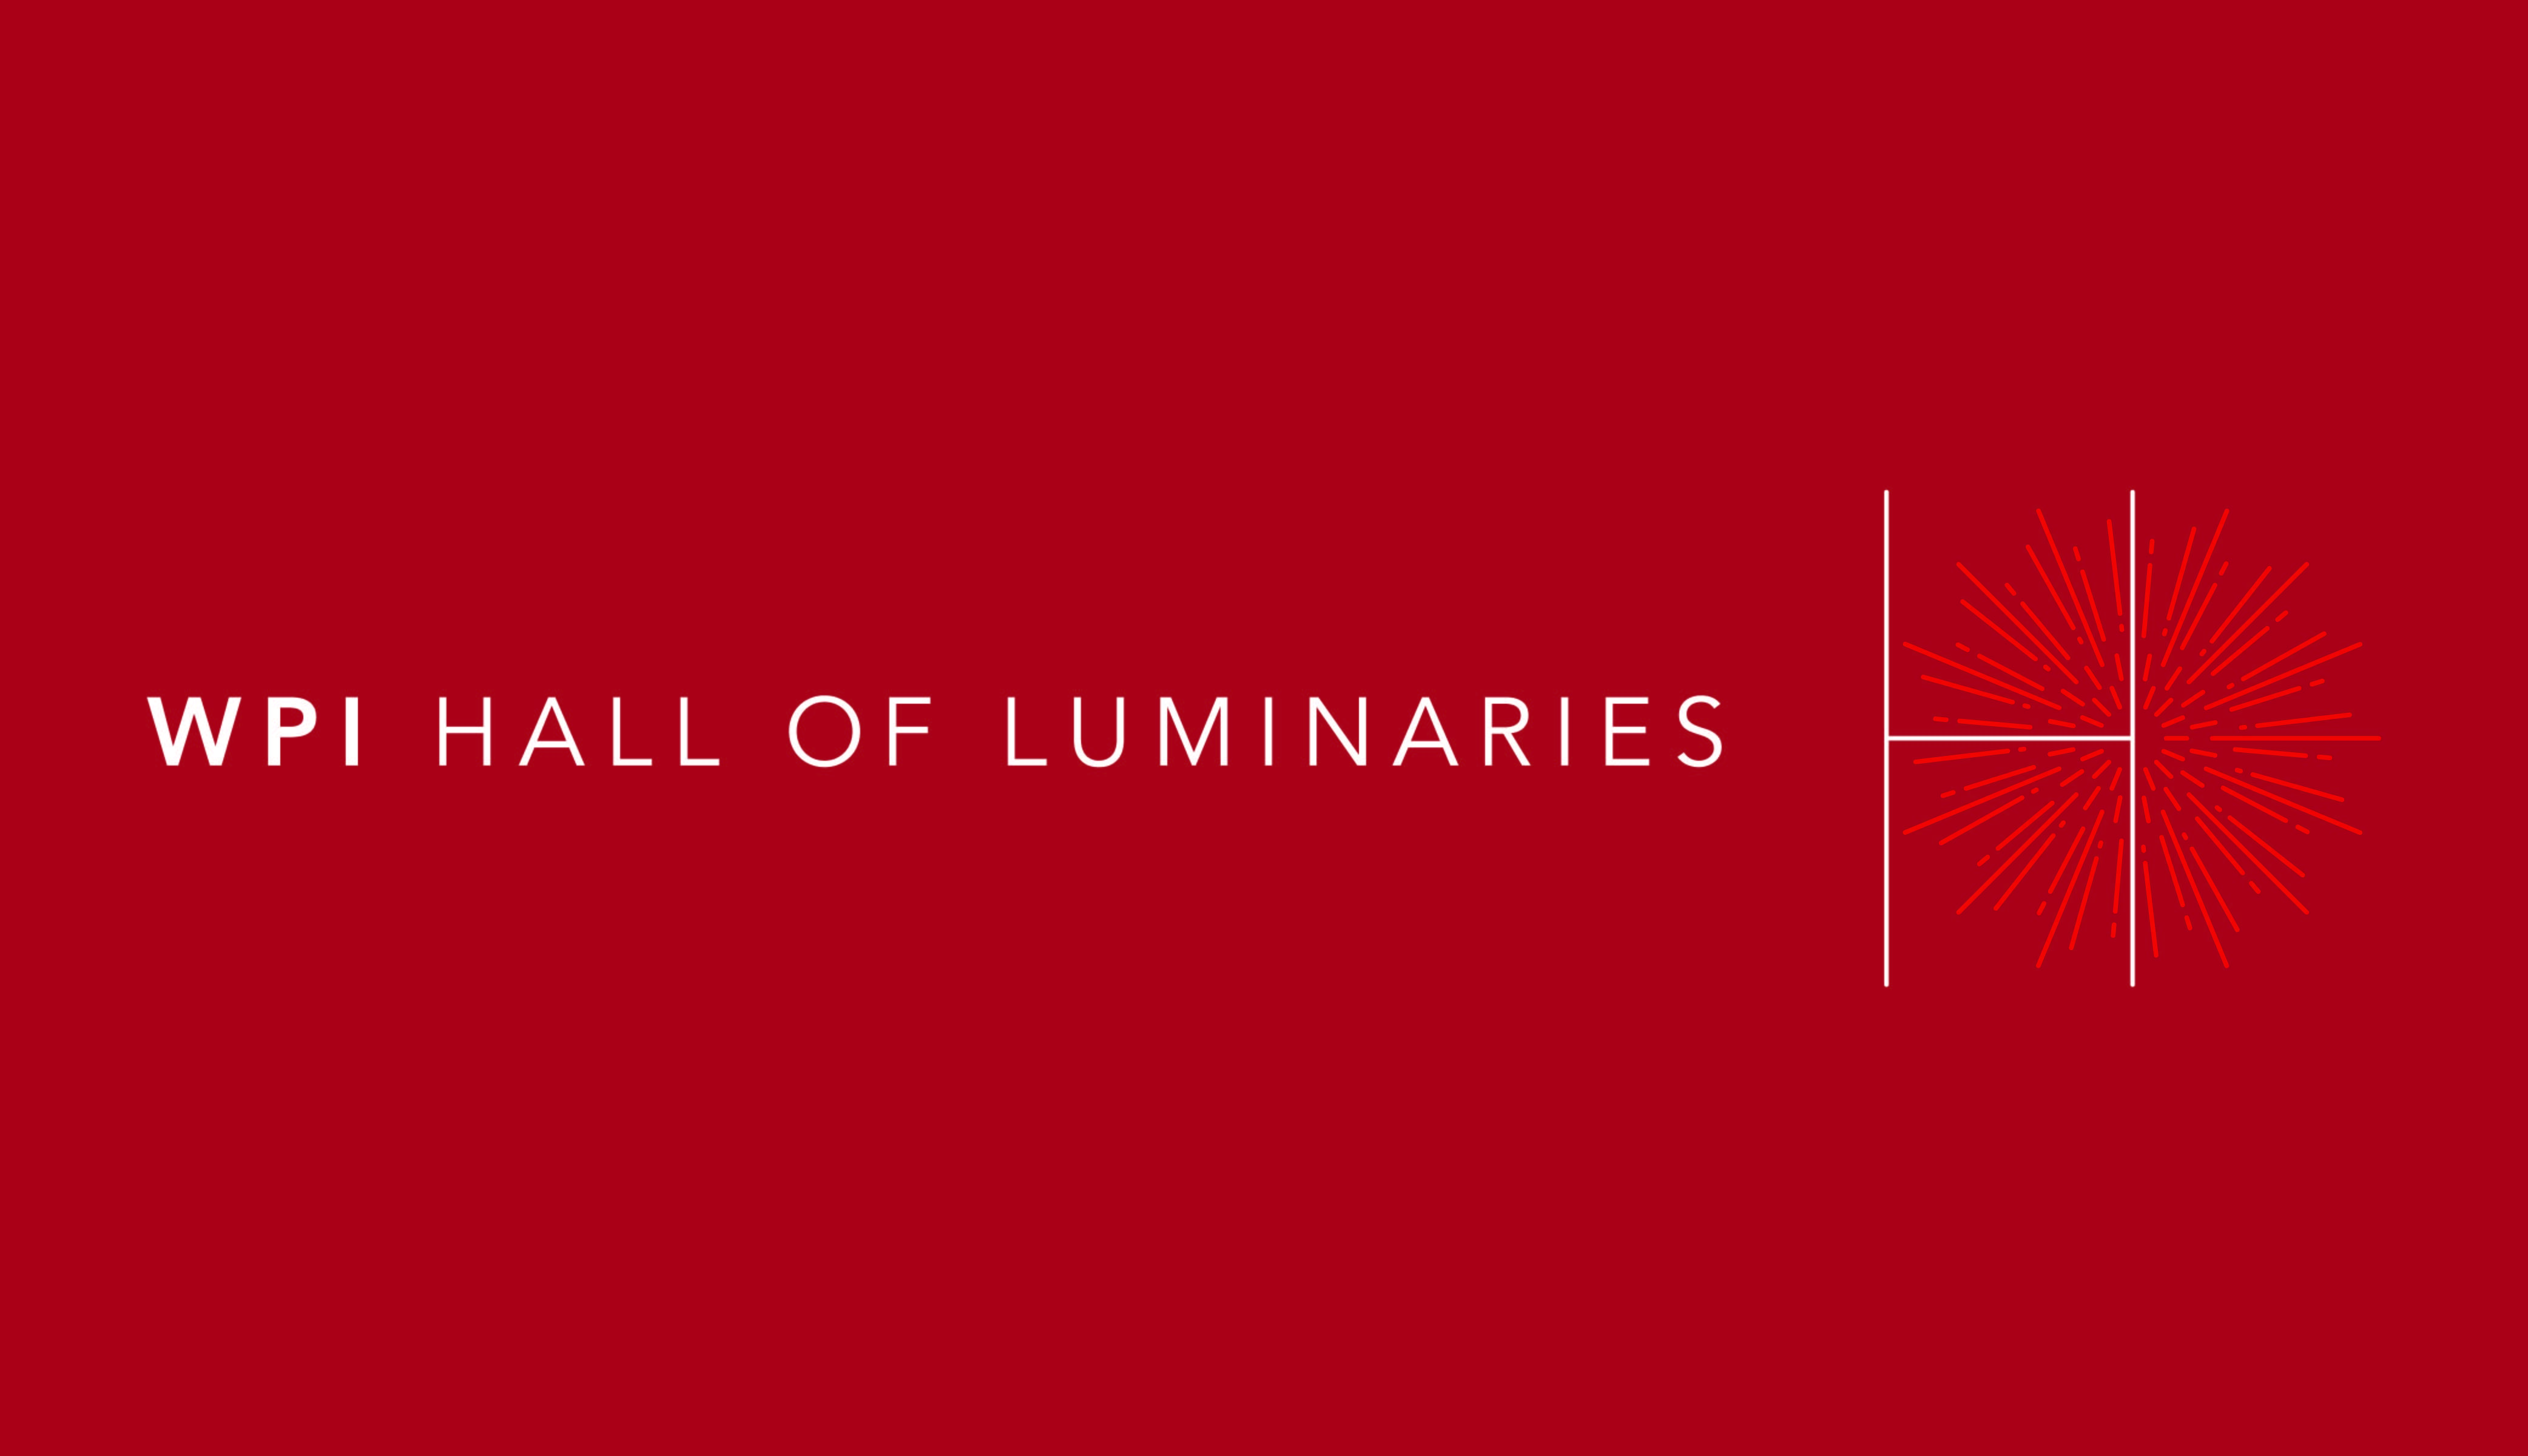 """""""WPI Hall of Luminaries"""" is written in white on a red background, with an """"H"""" and small burst of fireworks at the end."""